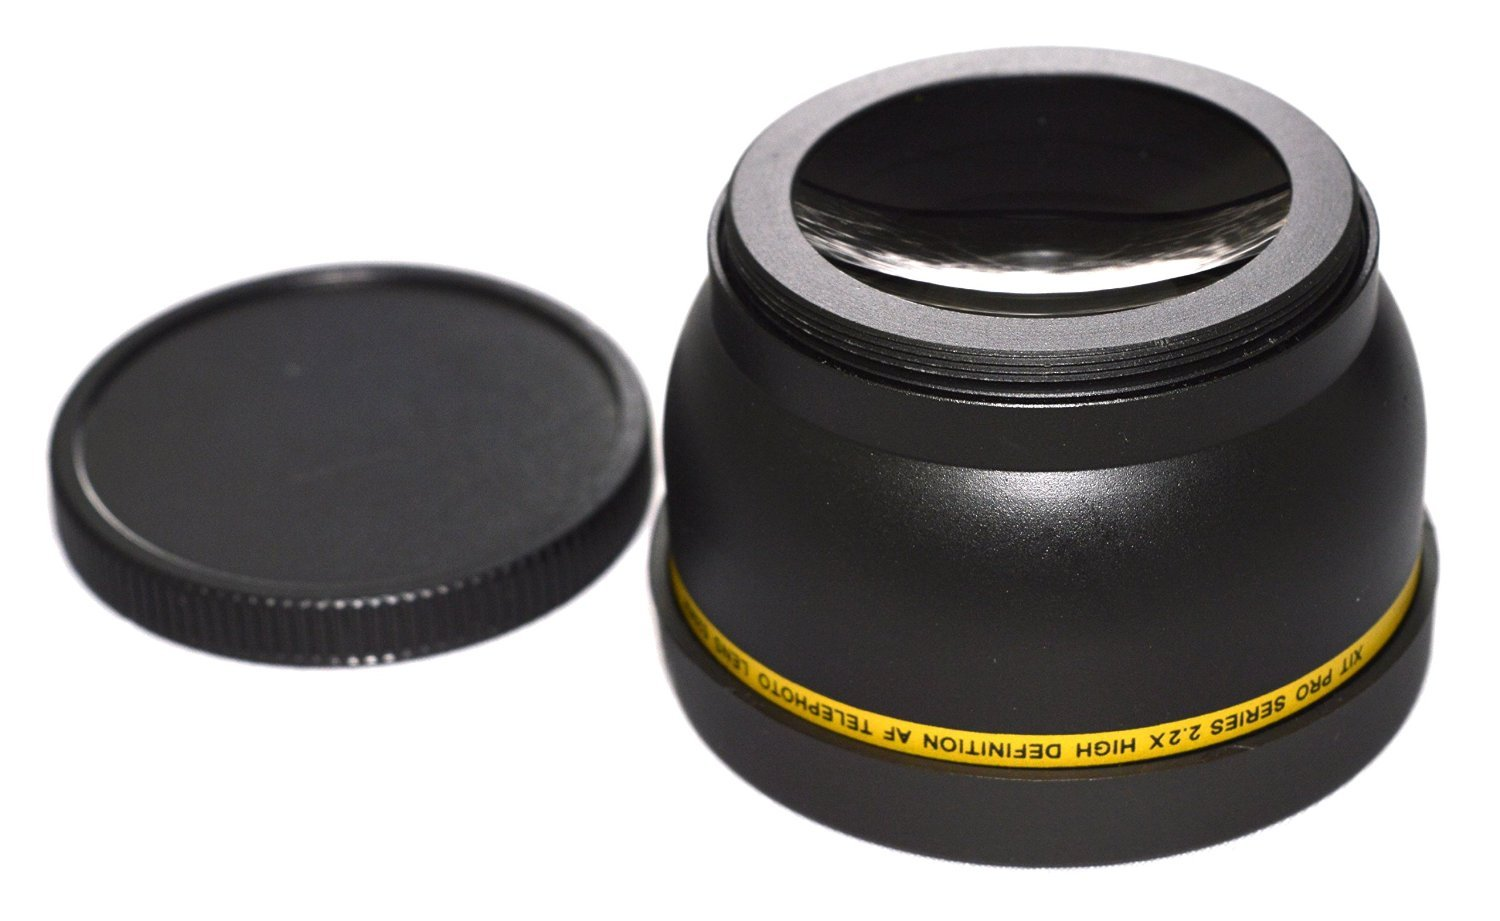 58mm High Definition Telephoto Lens for Sigma 70-300mm F4-5.6 DG Macro 2.2x Ultra High Power Telephoto Converter, 58 mm Telephoto Lens, 58mm Lens